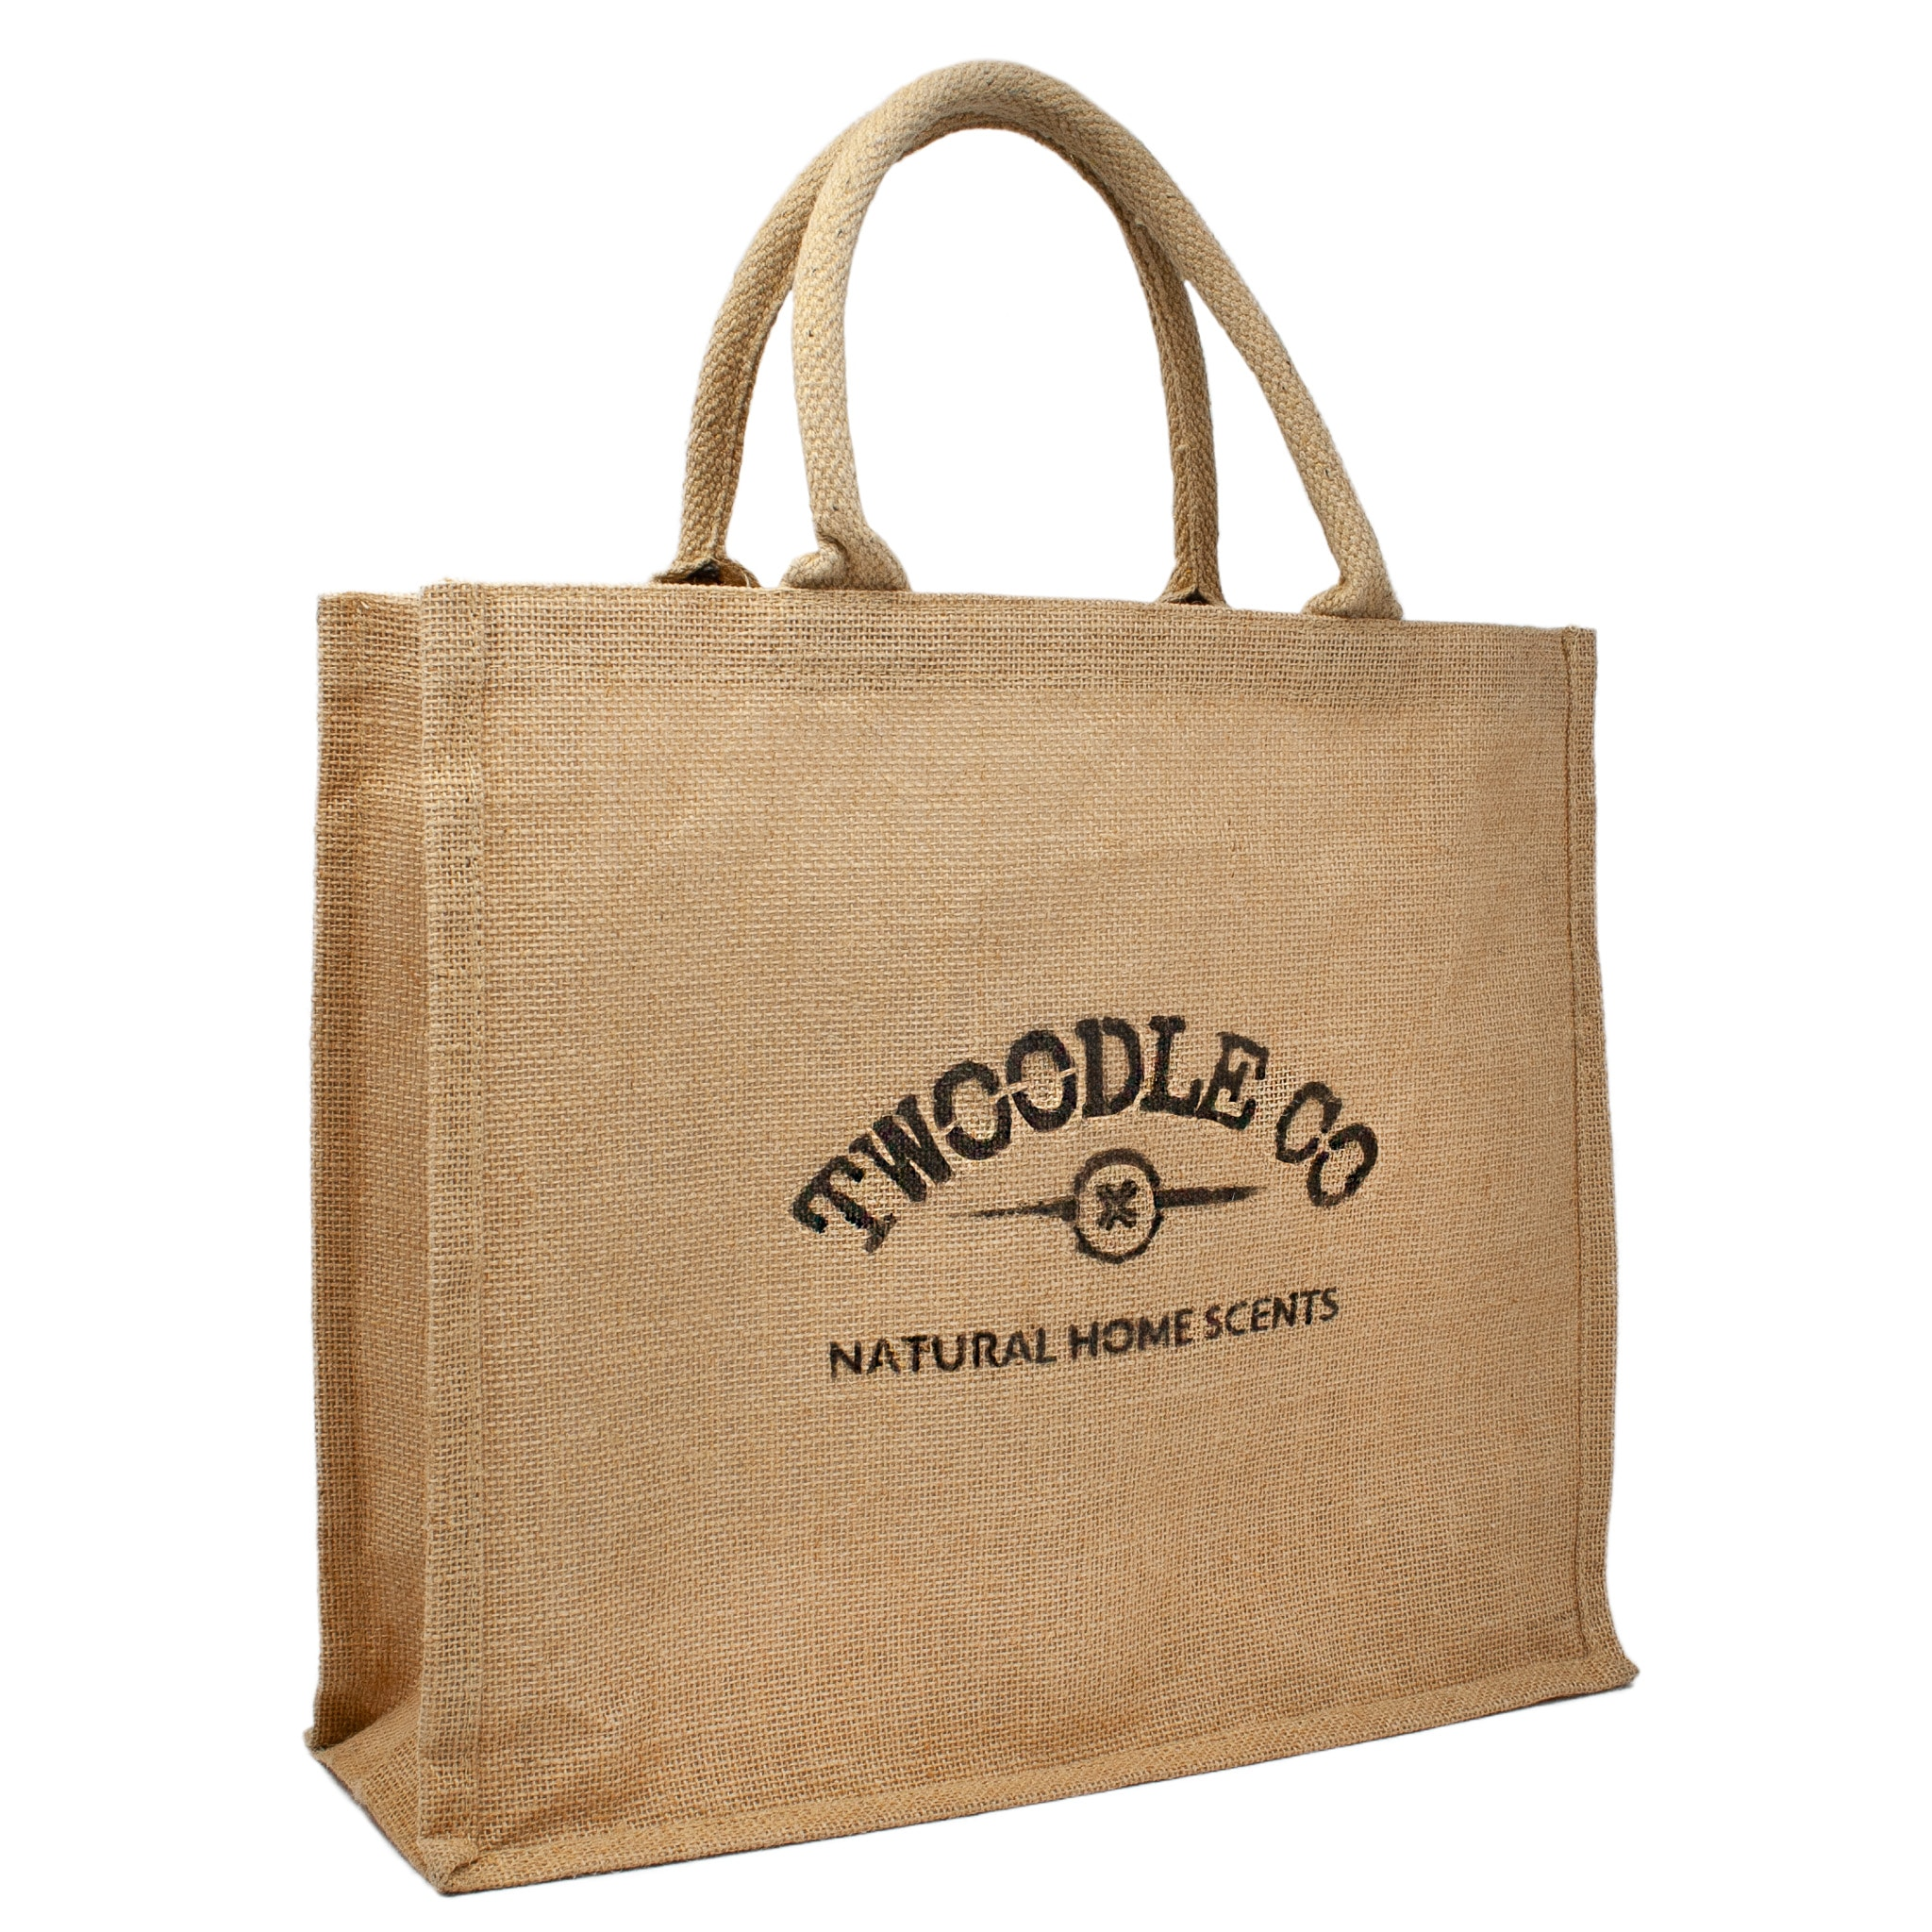 Eco friendly tote bag by Twoodle Co Natural Home Scents 2